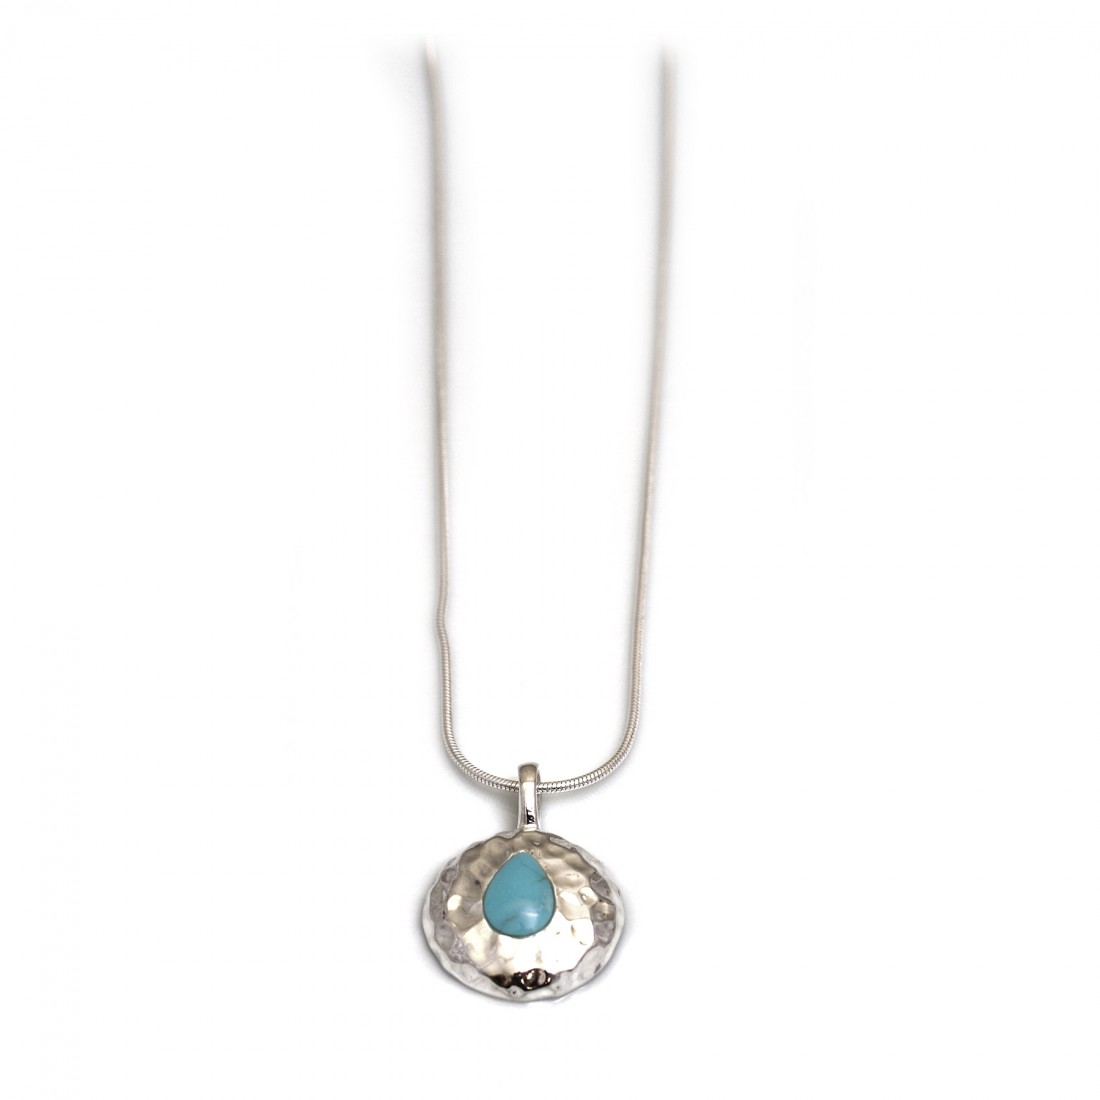 Hammered Sterling Silver & Turquoise Pendant With Chain